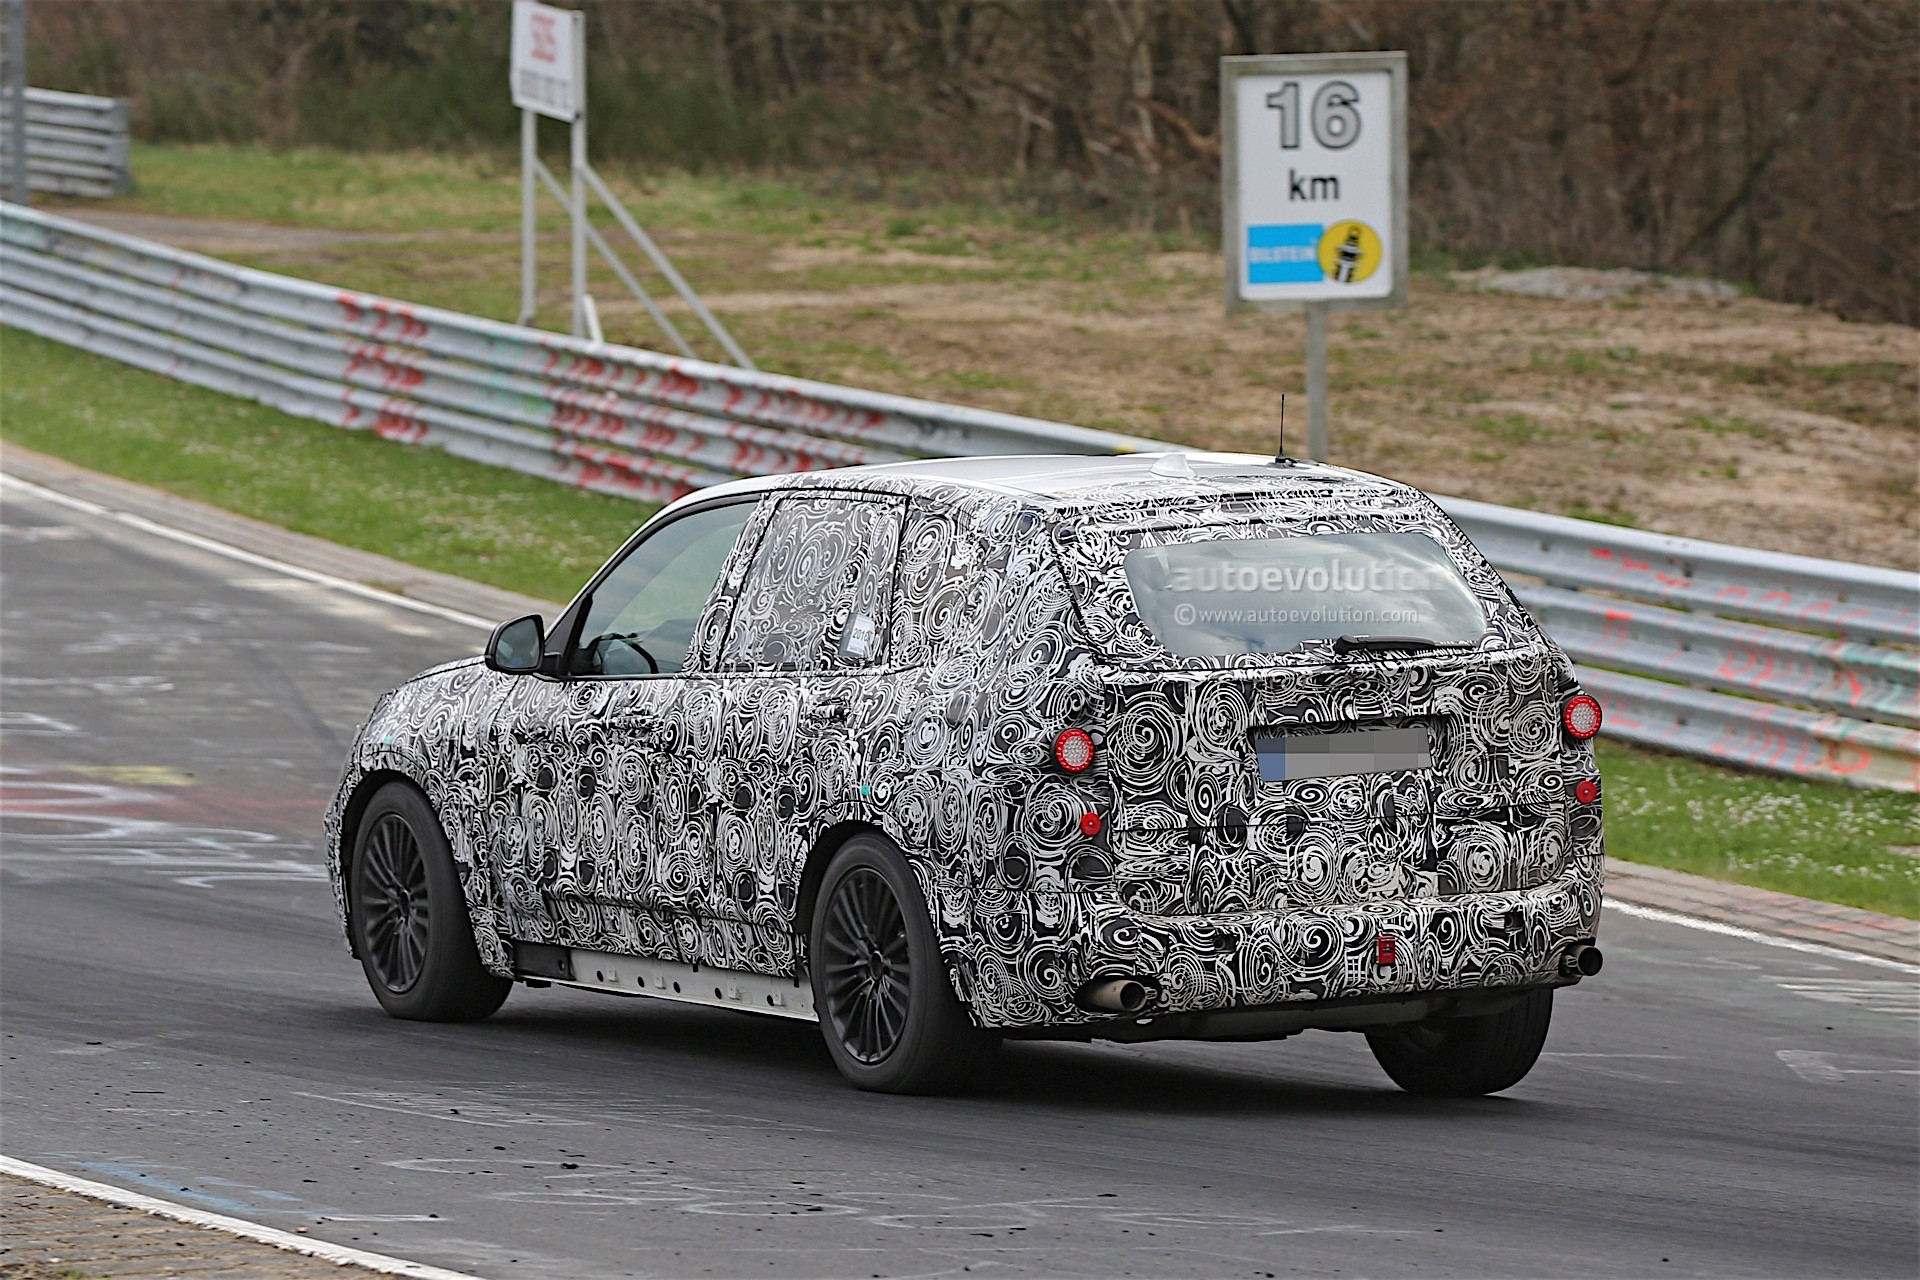 next-gen-2​019-bmw-x5​-laps-nurb​urgring-lo​oks-less-n​ose-heavy-​than-curre​nt-model_8